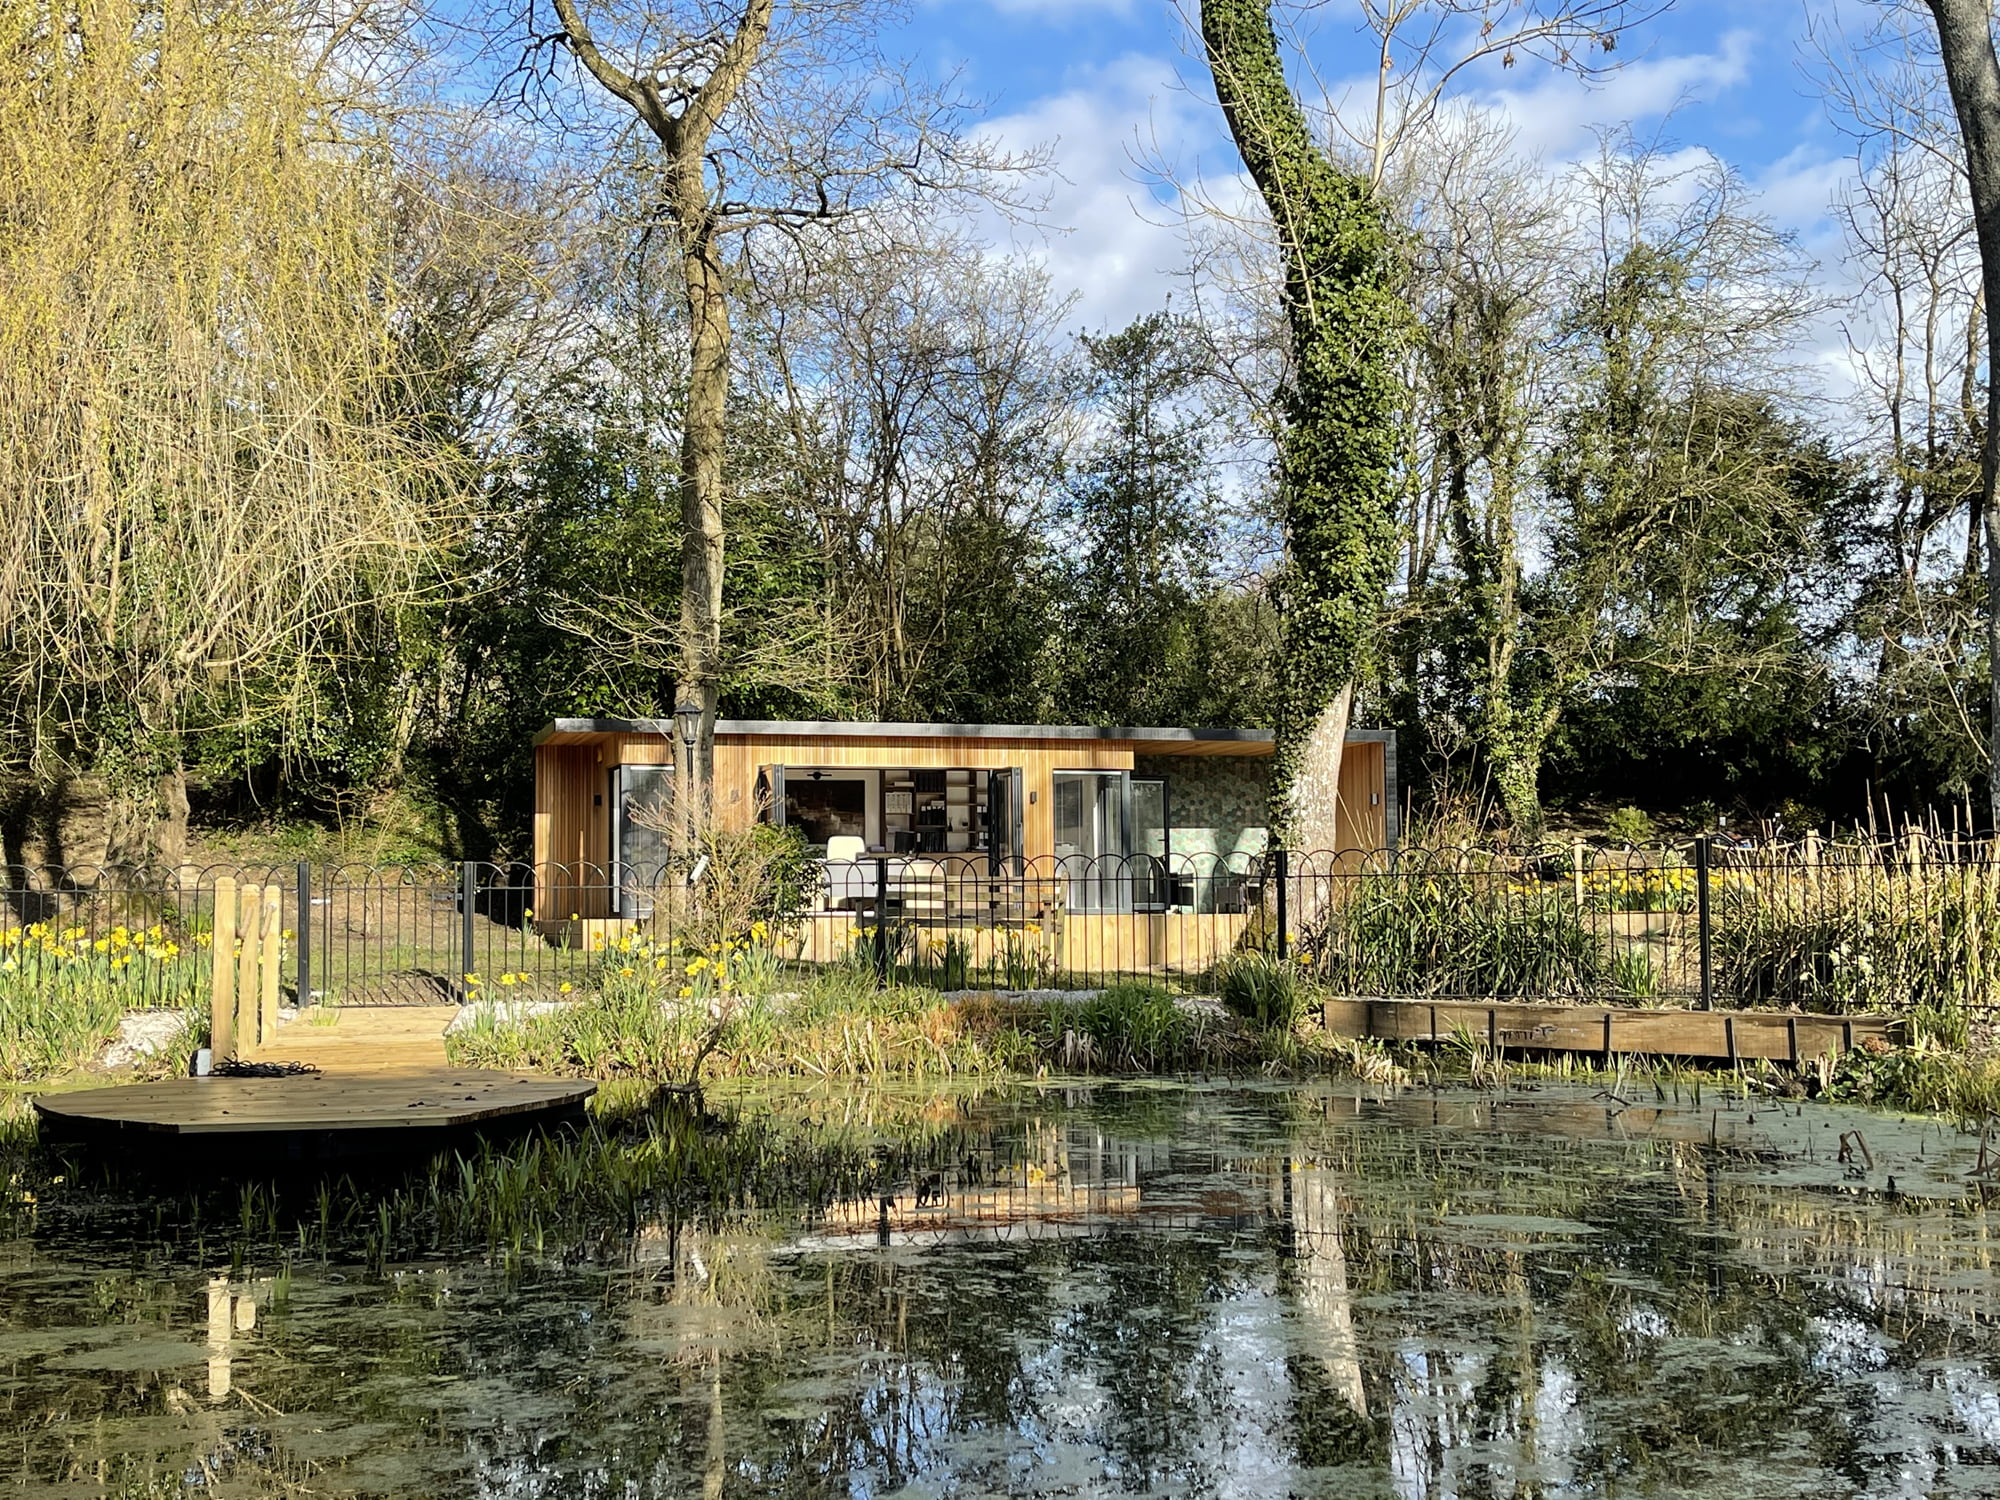 unique garden office by the pond